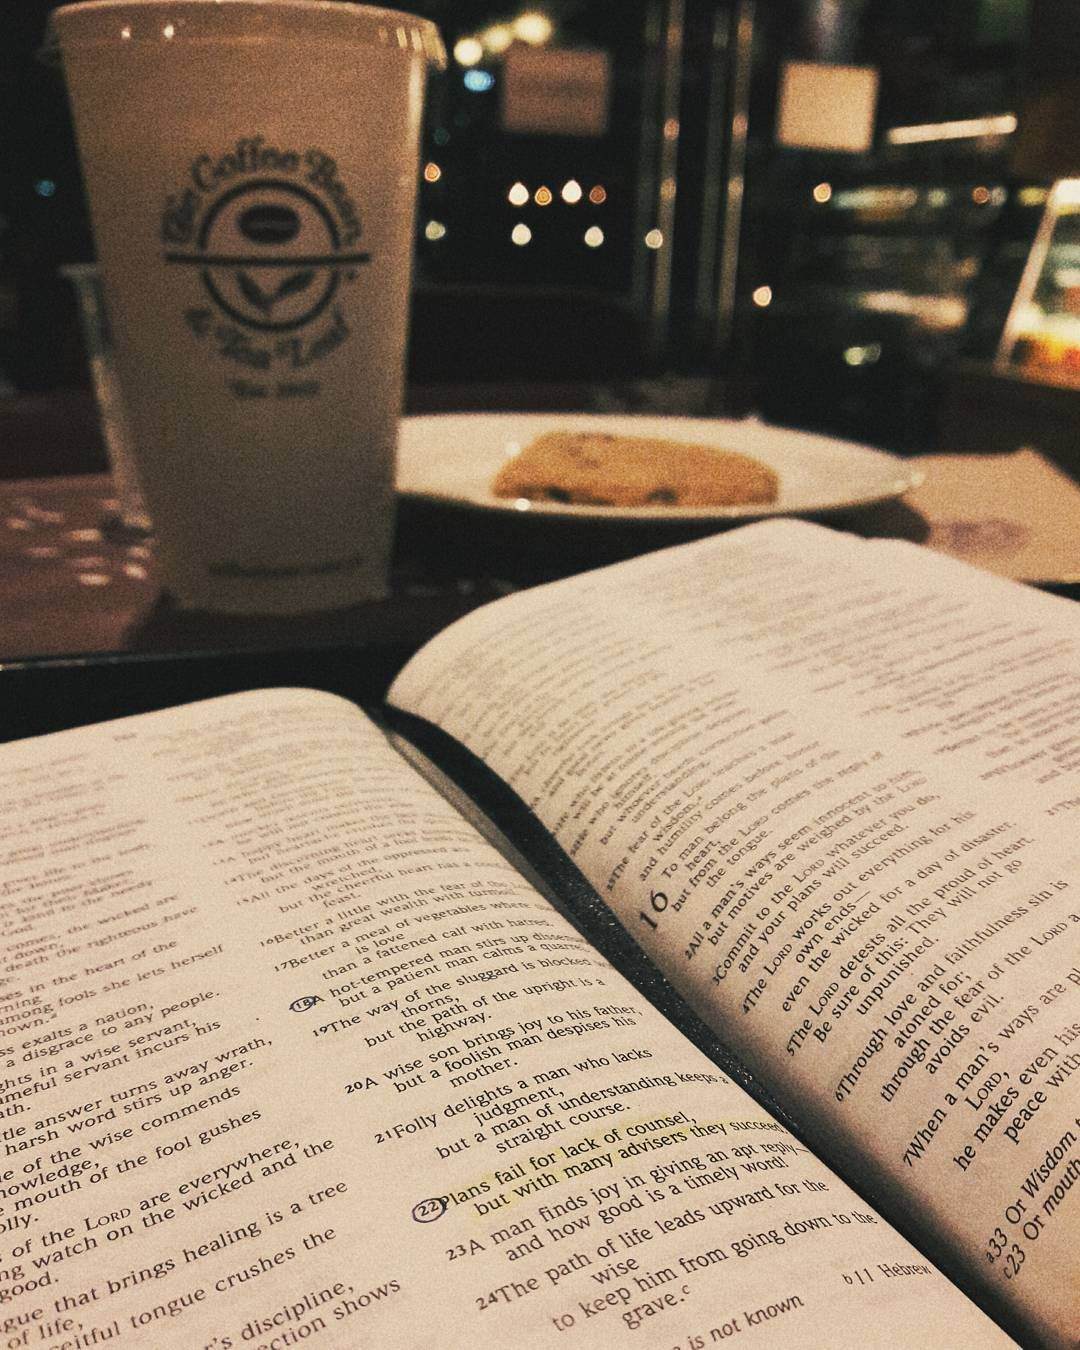 """Plans fail for lack of counsel but with many advisers they succeed. -Proverbs 15:22 . . """"Who is so wise as to have perfect knowledge of all things? Therefore trust not too much to your own opinion but be ready also to hear the opinions of others."""" -Thomas à Kempis . . . Lovely night at CBTL.  . . . .  #bibleverse #coffee #proverbs #cbtl #cbtlph #vsco #vscocam #vscoph #vscophile #vscogood #grainy #wordfortheday #verseoftheday #bible #scripture #biblestudy #quiettime #devotion #dailydevotion…"""